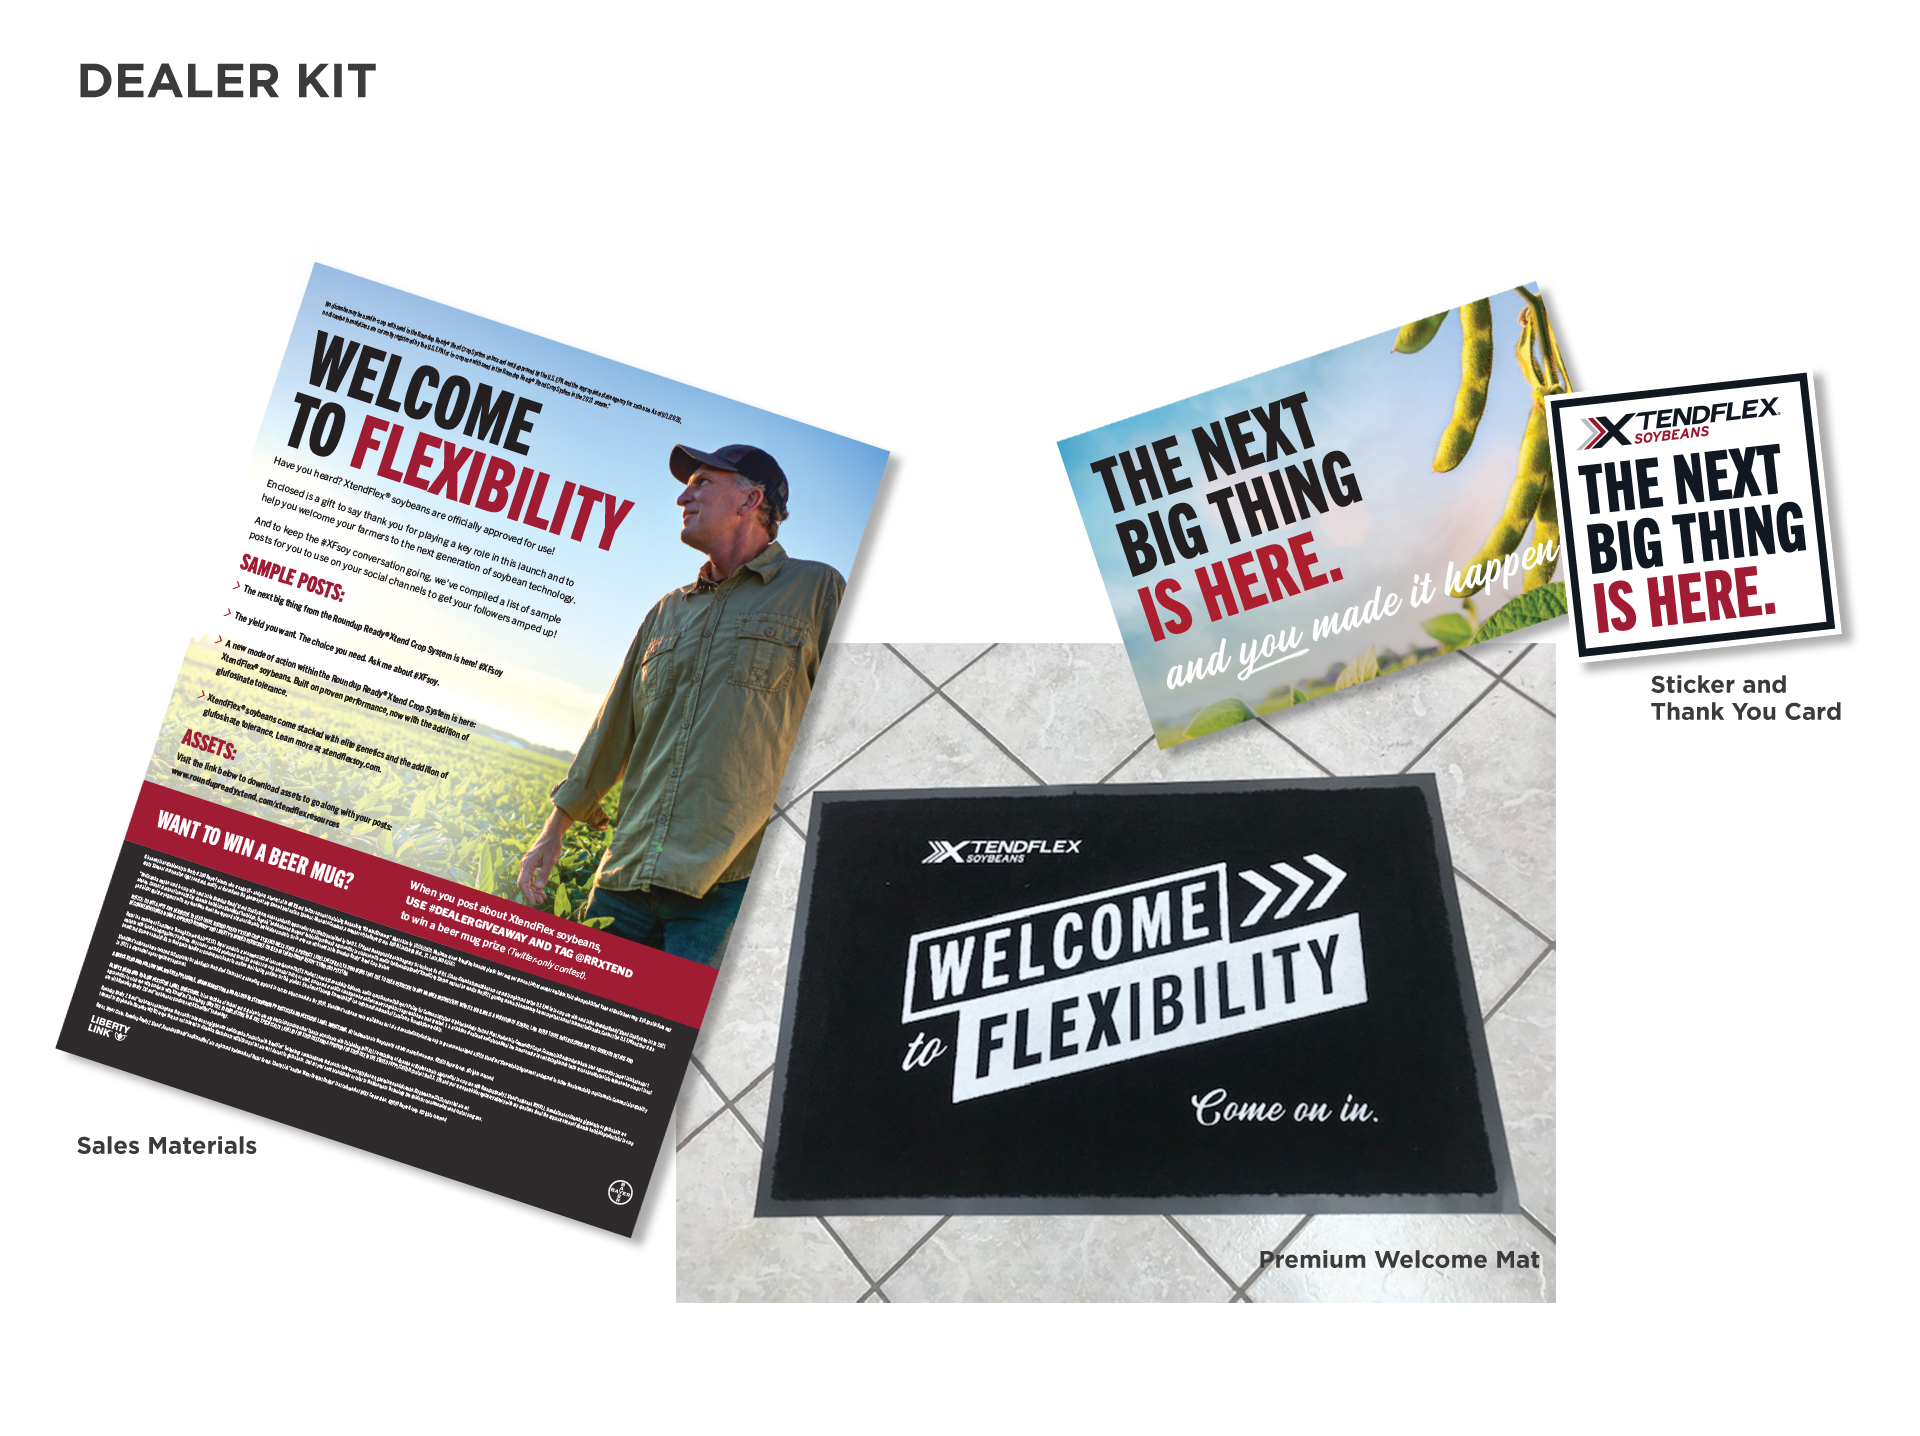 XtendFlex Next Big Thing Welcome Mat Kit Image